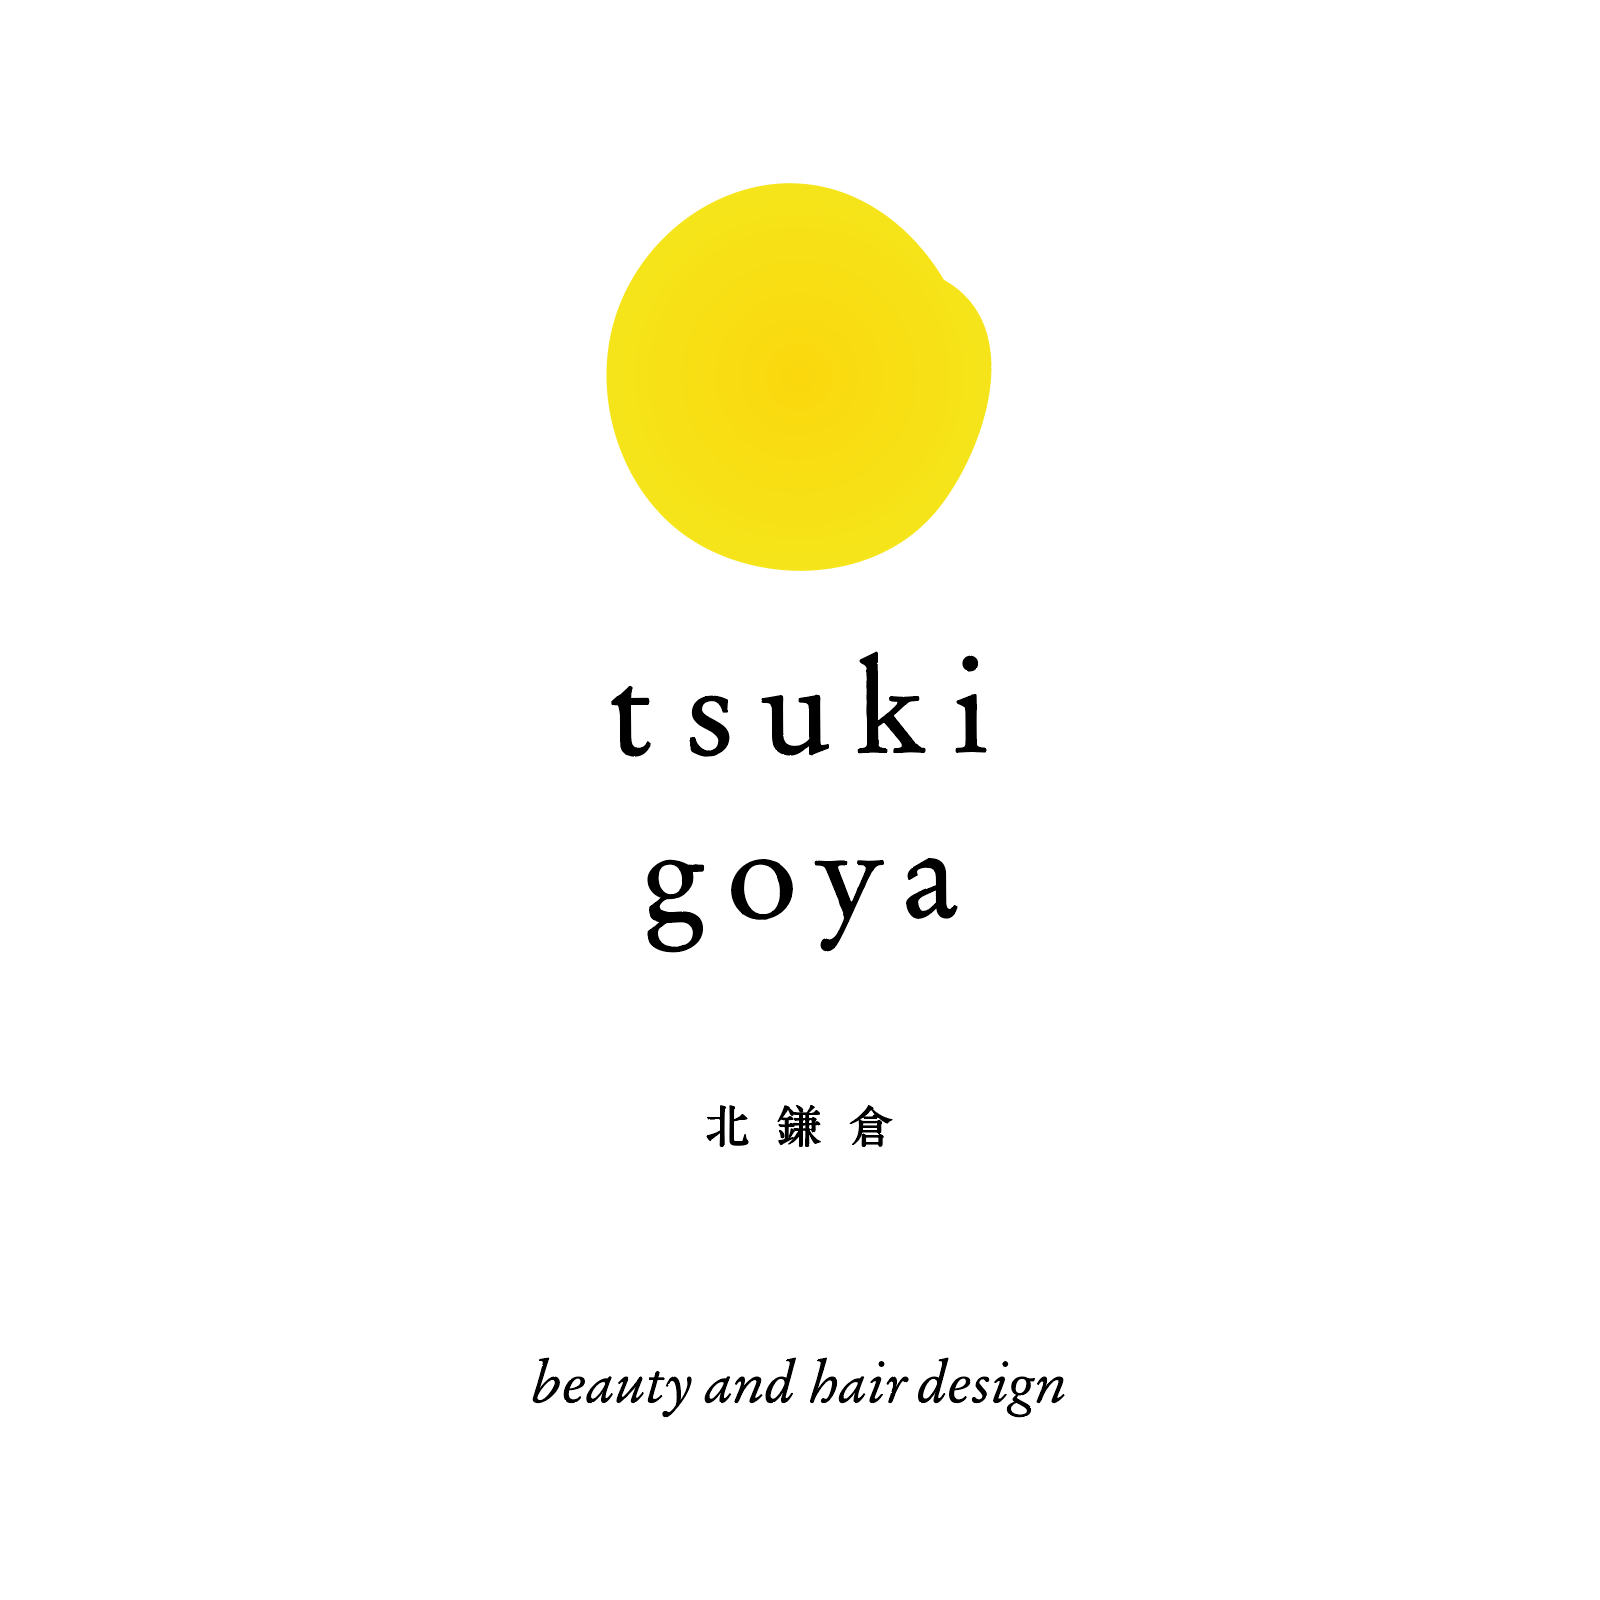 tsukigoya 北鎌倉 | beauty and hair design | 美容室